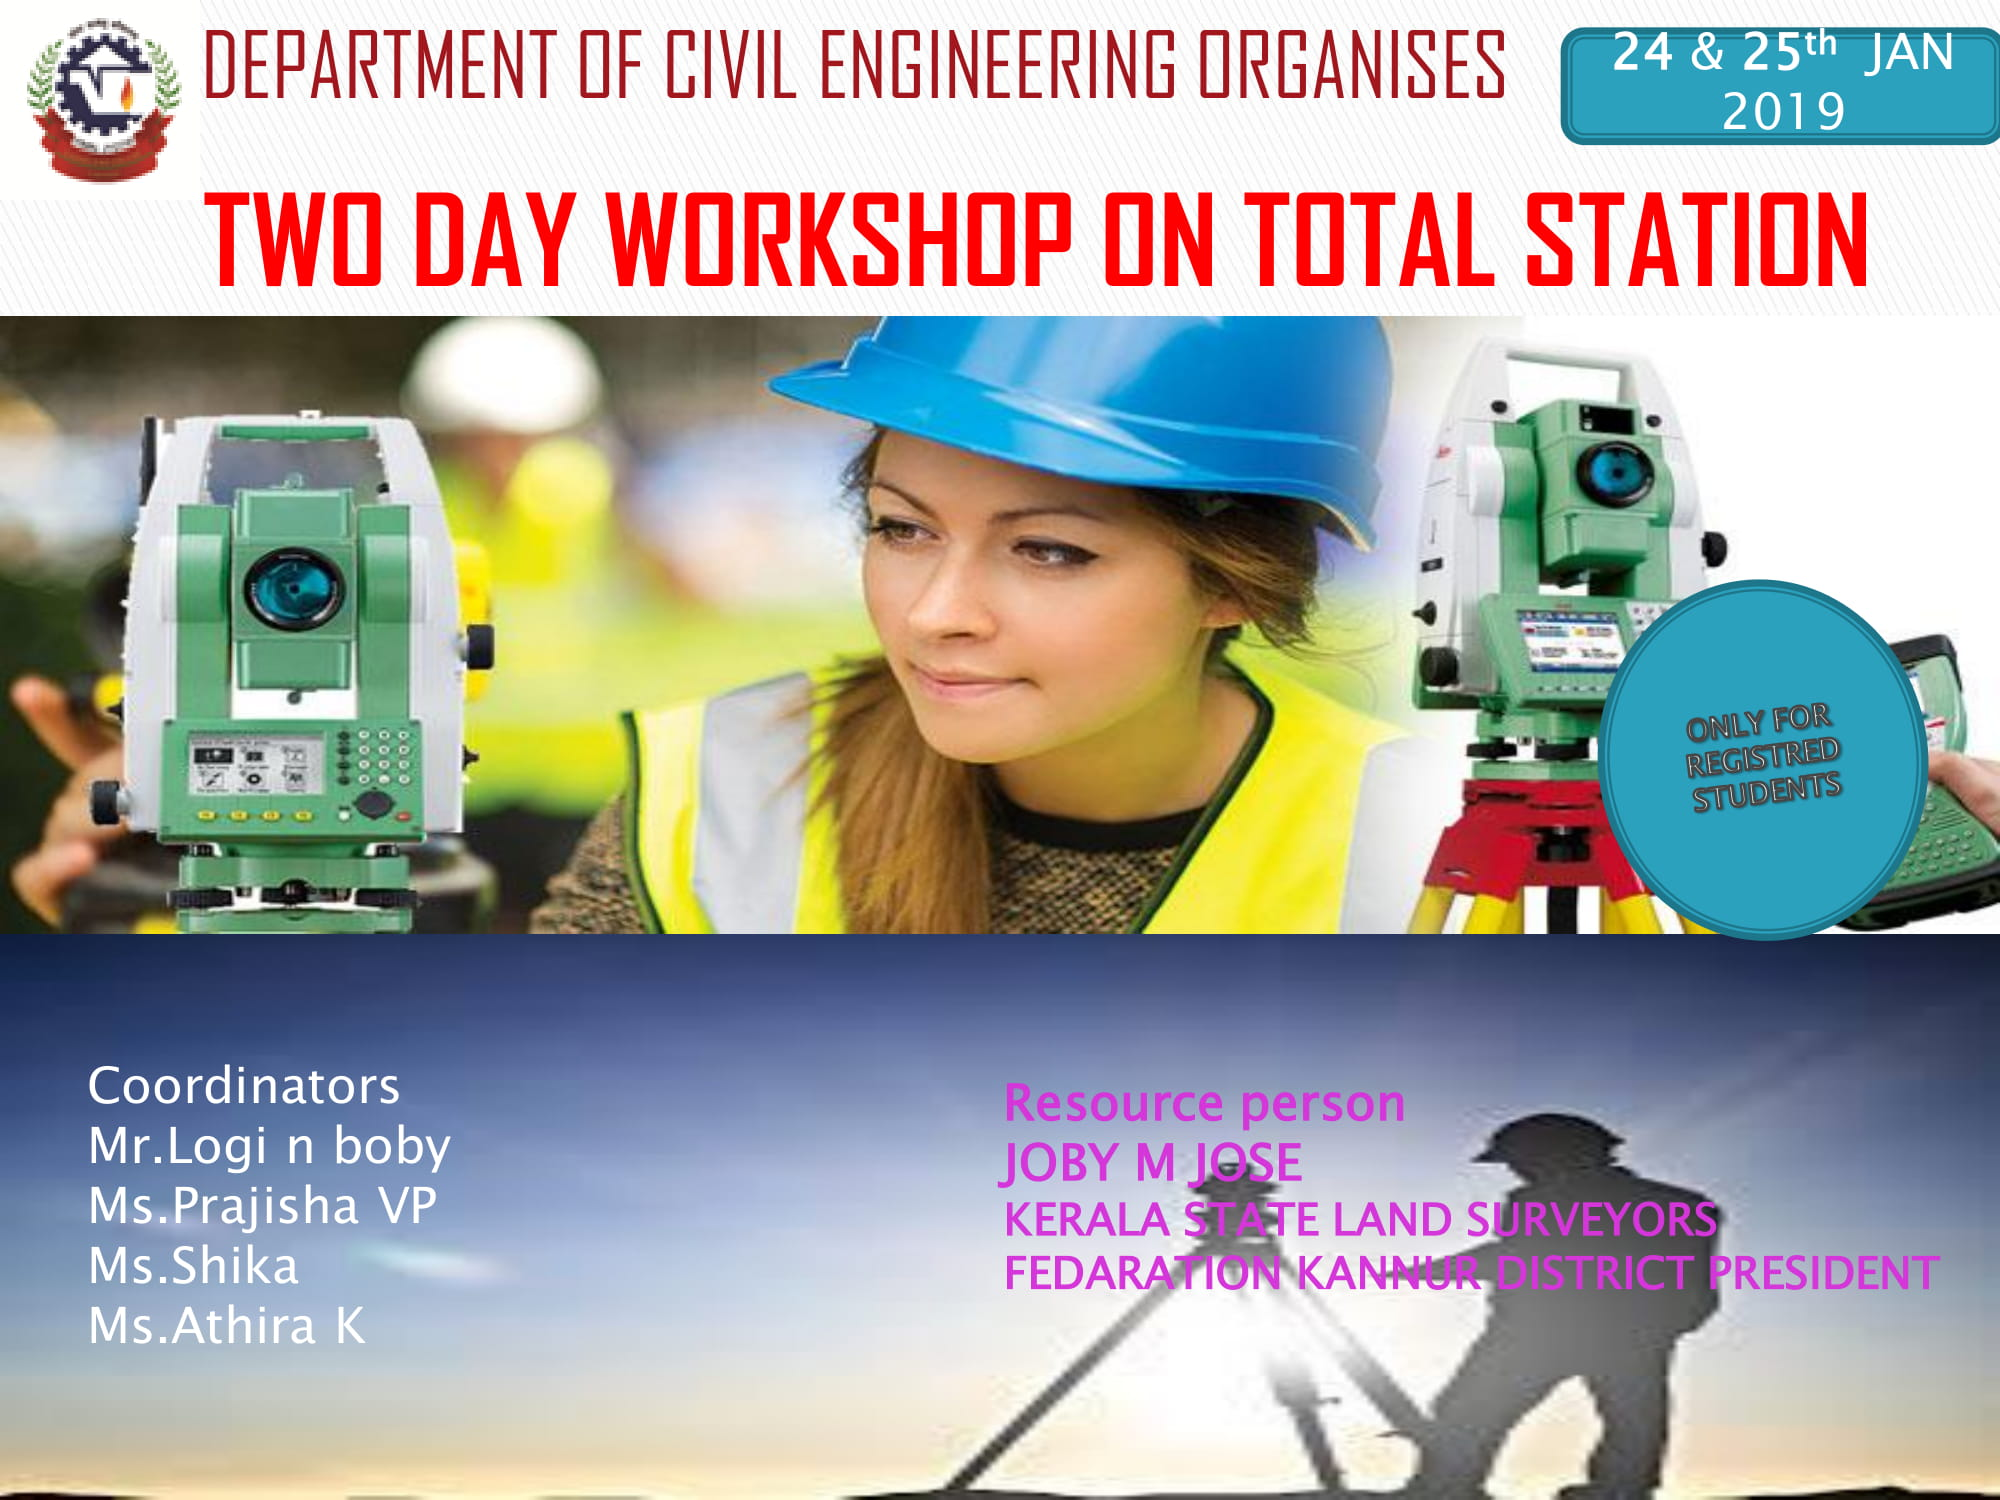 TWO DAY WORKSHOP ON TOTAL STATION